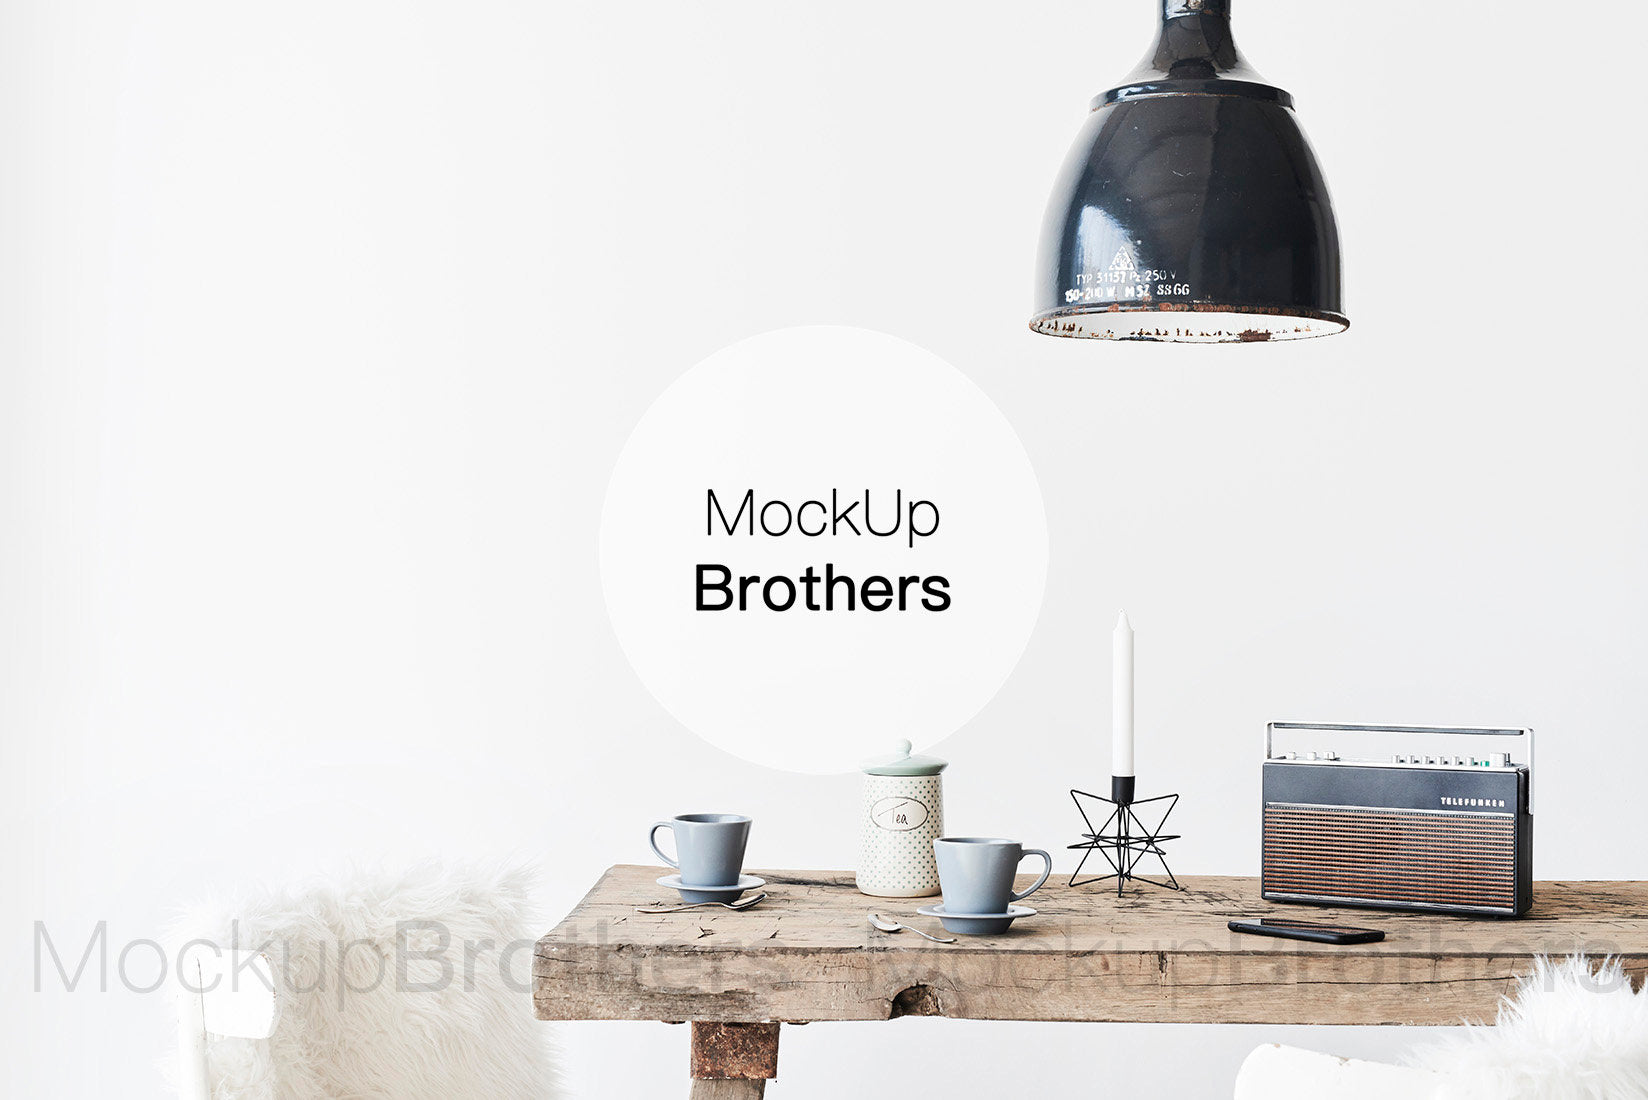 Farmhouse interior mockup by Mockup Brothers